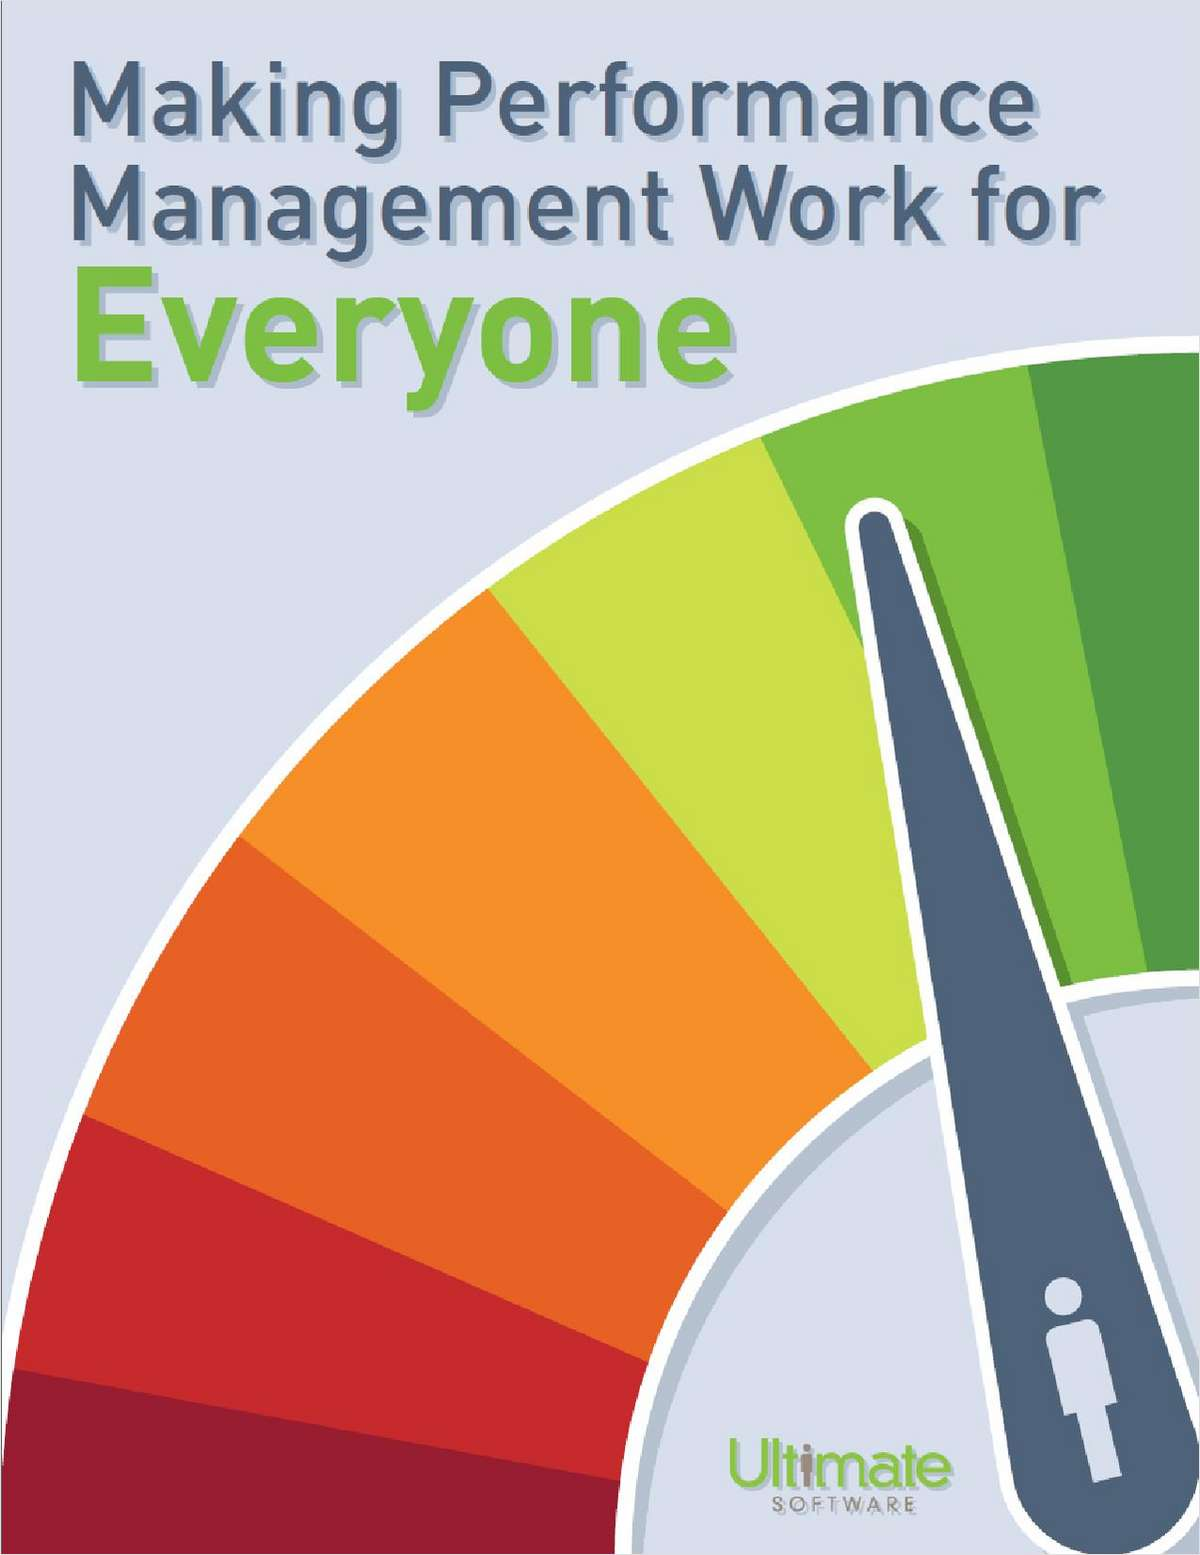 Making Performance Management Work for Everyone